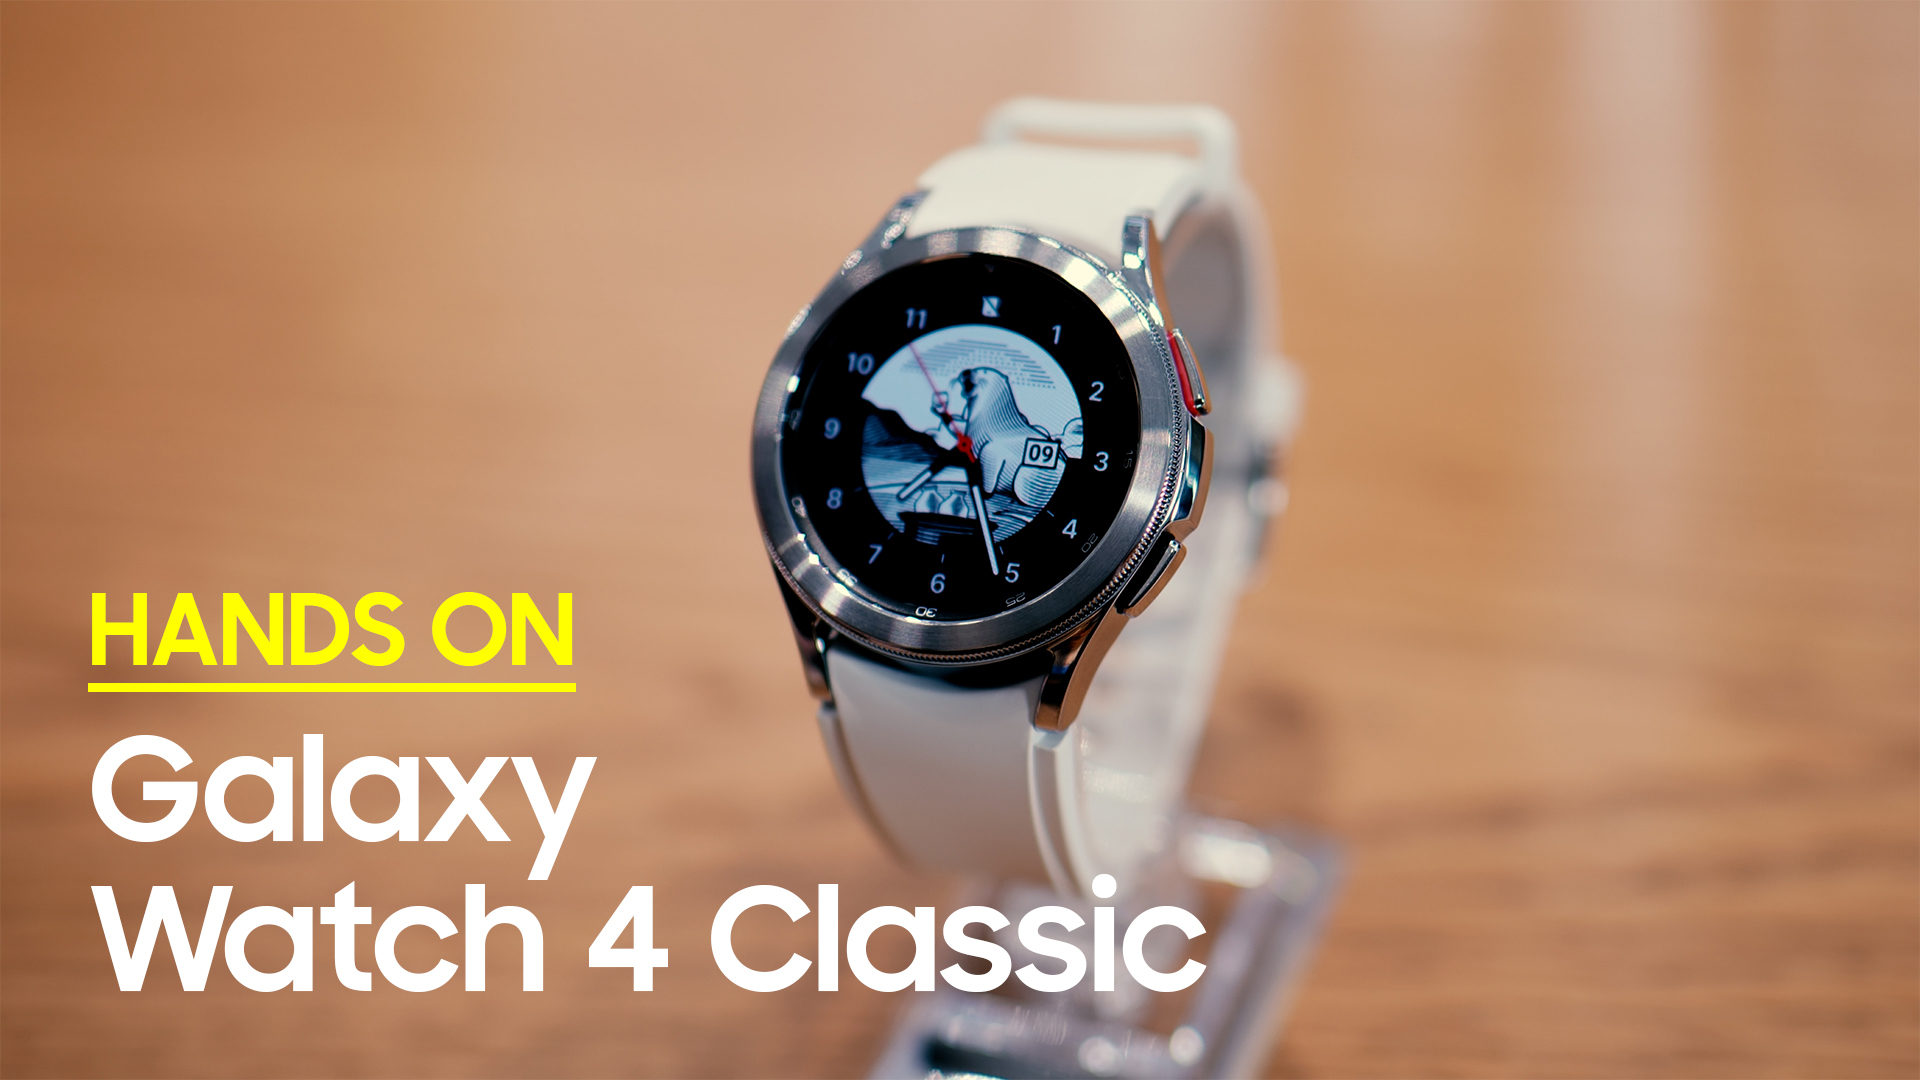 Galaxy Watch 4 and Galaxy Watch 4 Classic hands-on